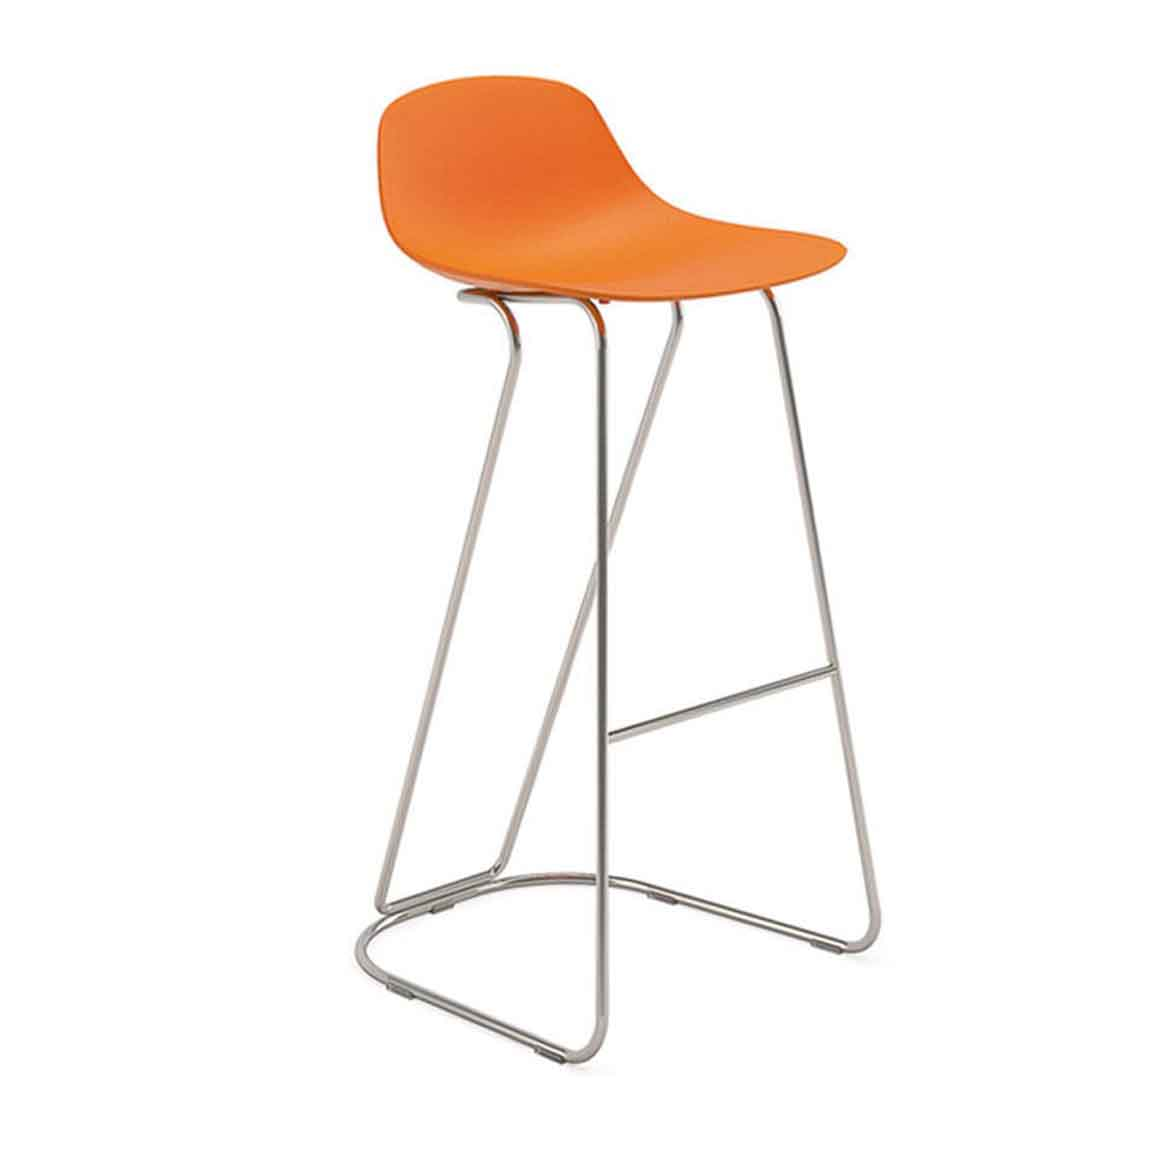 Dandy barstool is with plastic shell and painted steel frame in many different colors.